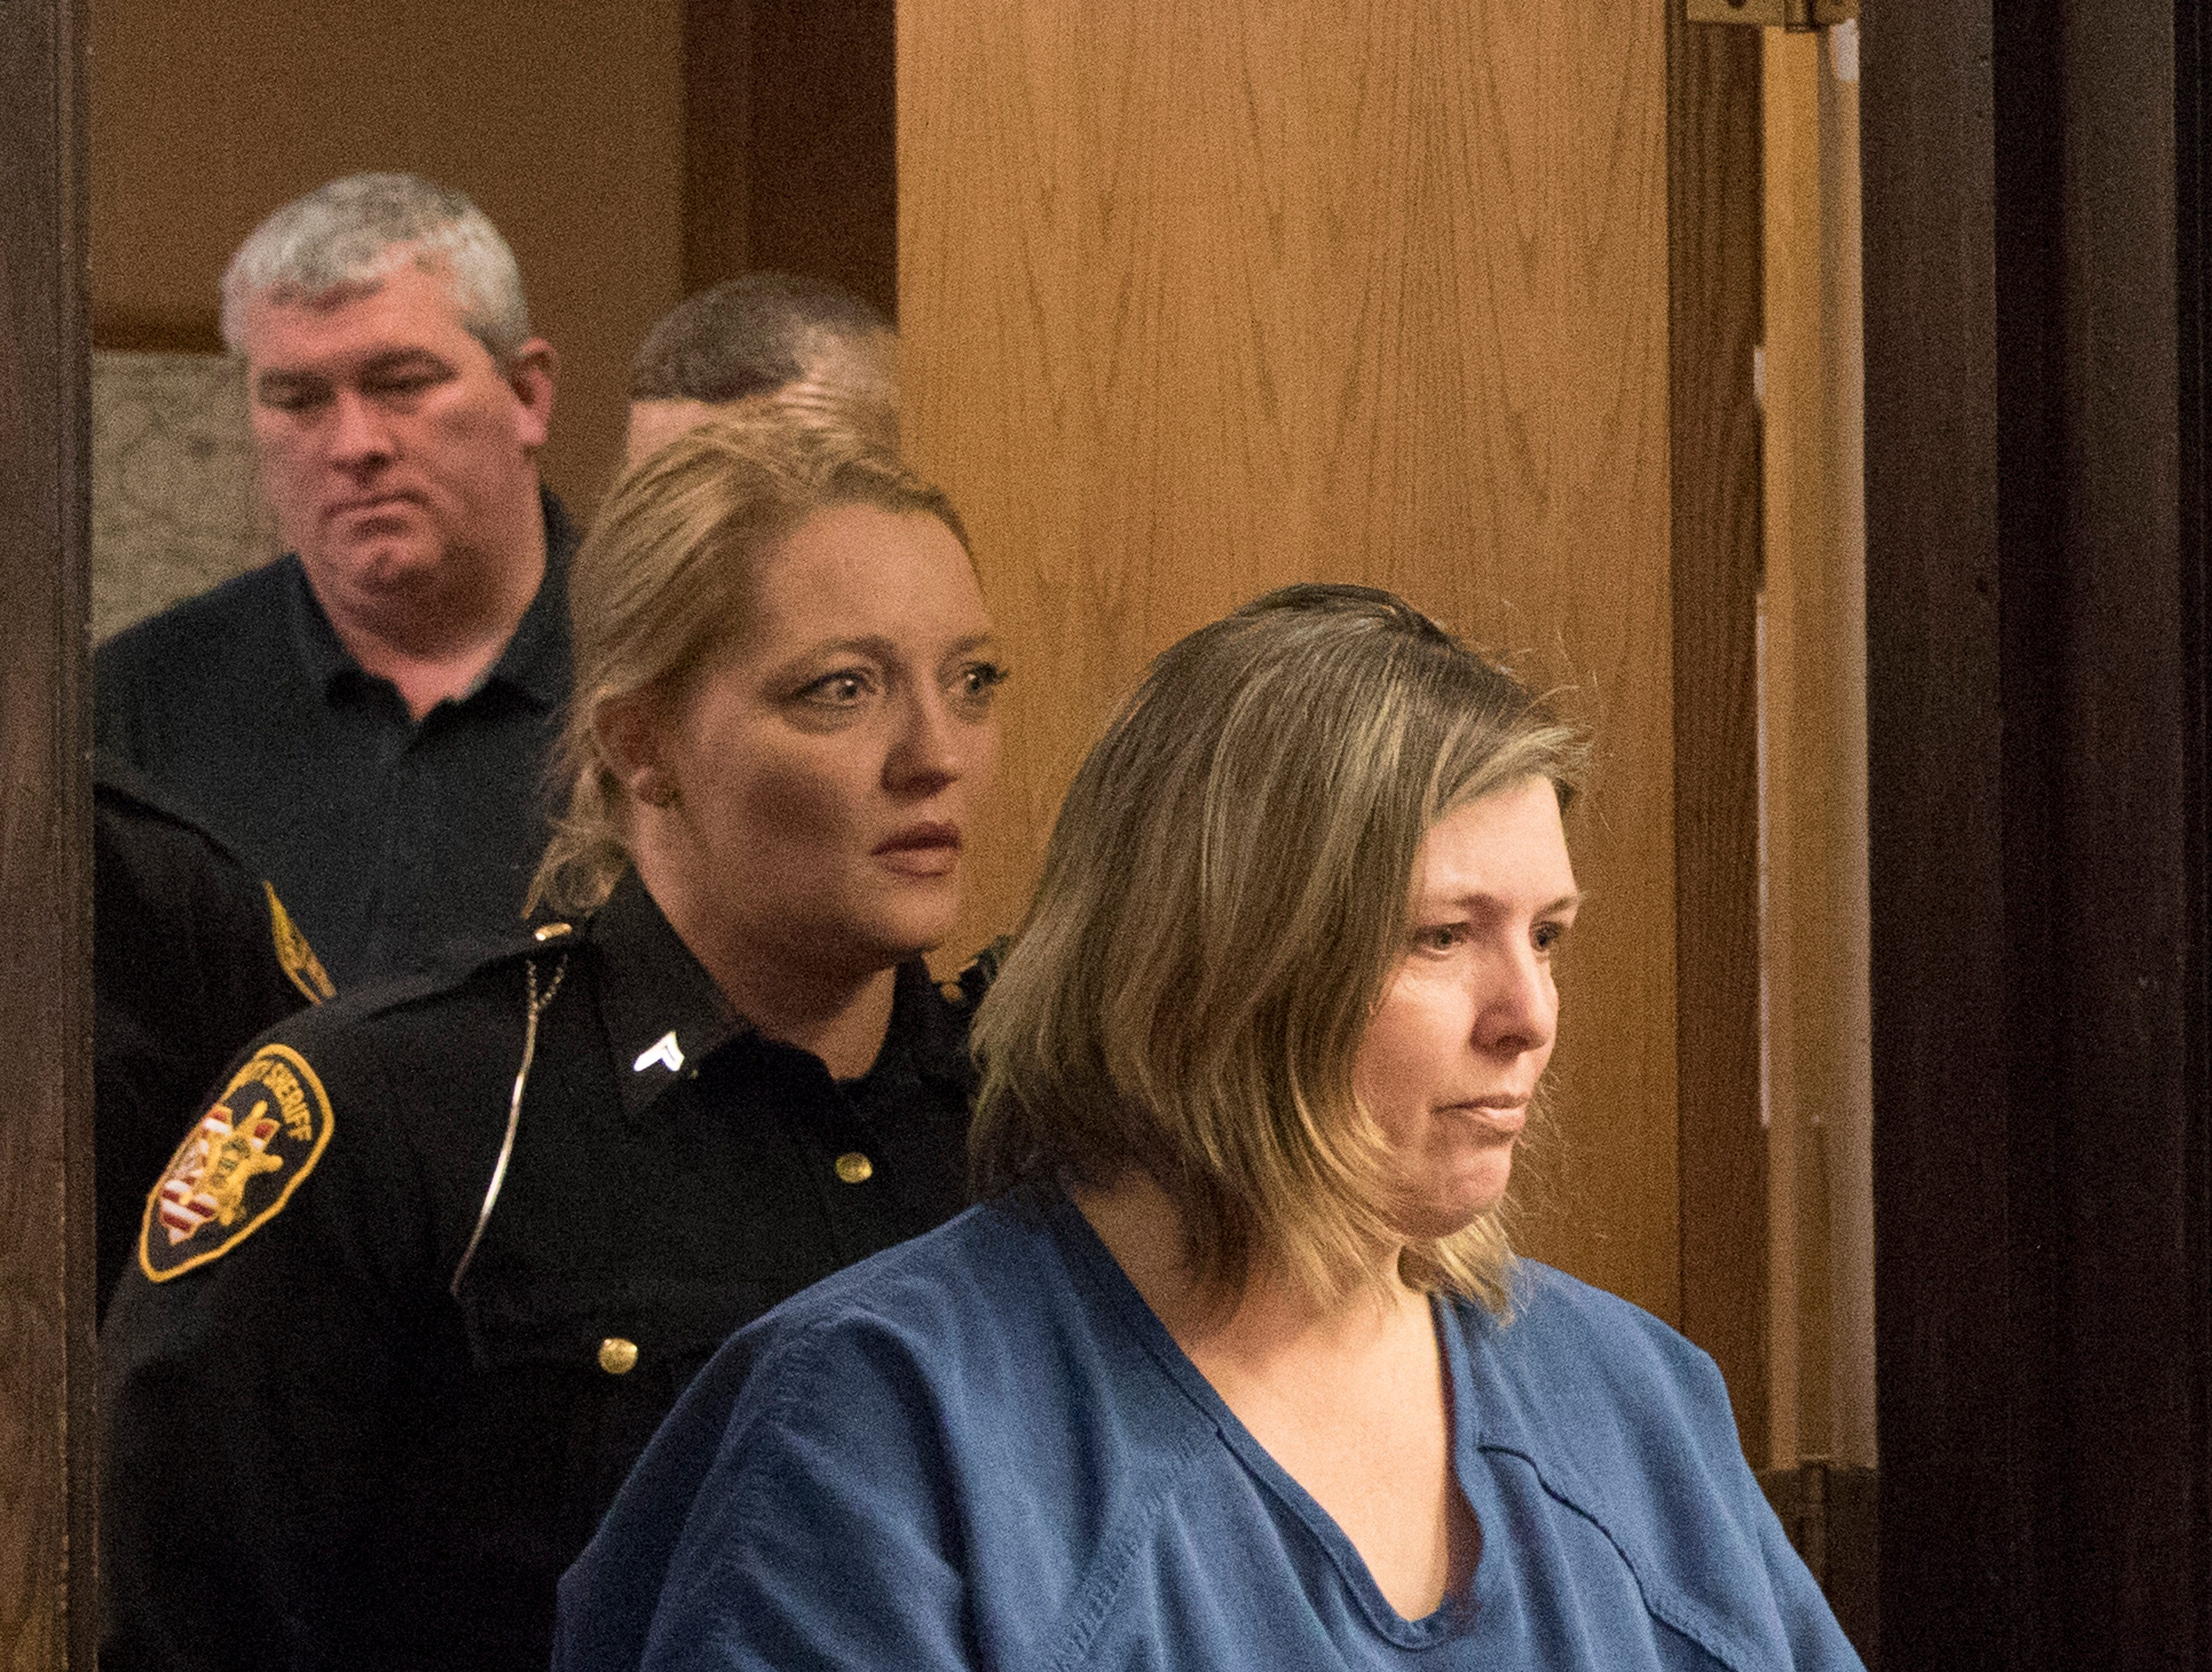 "Angela Wagner, 48, of South Webster, is escorted by female deputies into Judge Randy Deering's court for her arraignment at the Pike County Courthouse on Thursday, November 29, 2018 in Waverly, Ohio. Angela Wagner is facing murder chargers, along with her husband George ""Billy"" Wagner III and sons Edward ""Jake"" Wagner and George Wagner IV, relating to the deaths of seven Rhoden family members and Hannah Gilley over a possible custody dispute. The eight homicides took place in April of 2016 at four different homes, all around the same time, and it would spawn the largest homicide investigation in Ohio history. If convicted, all are facing the death penalty."